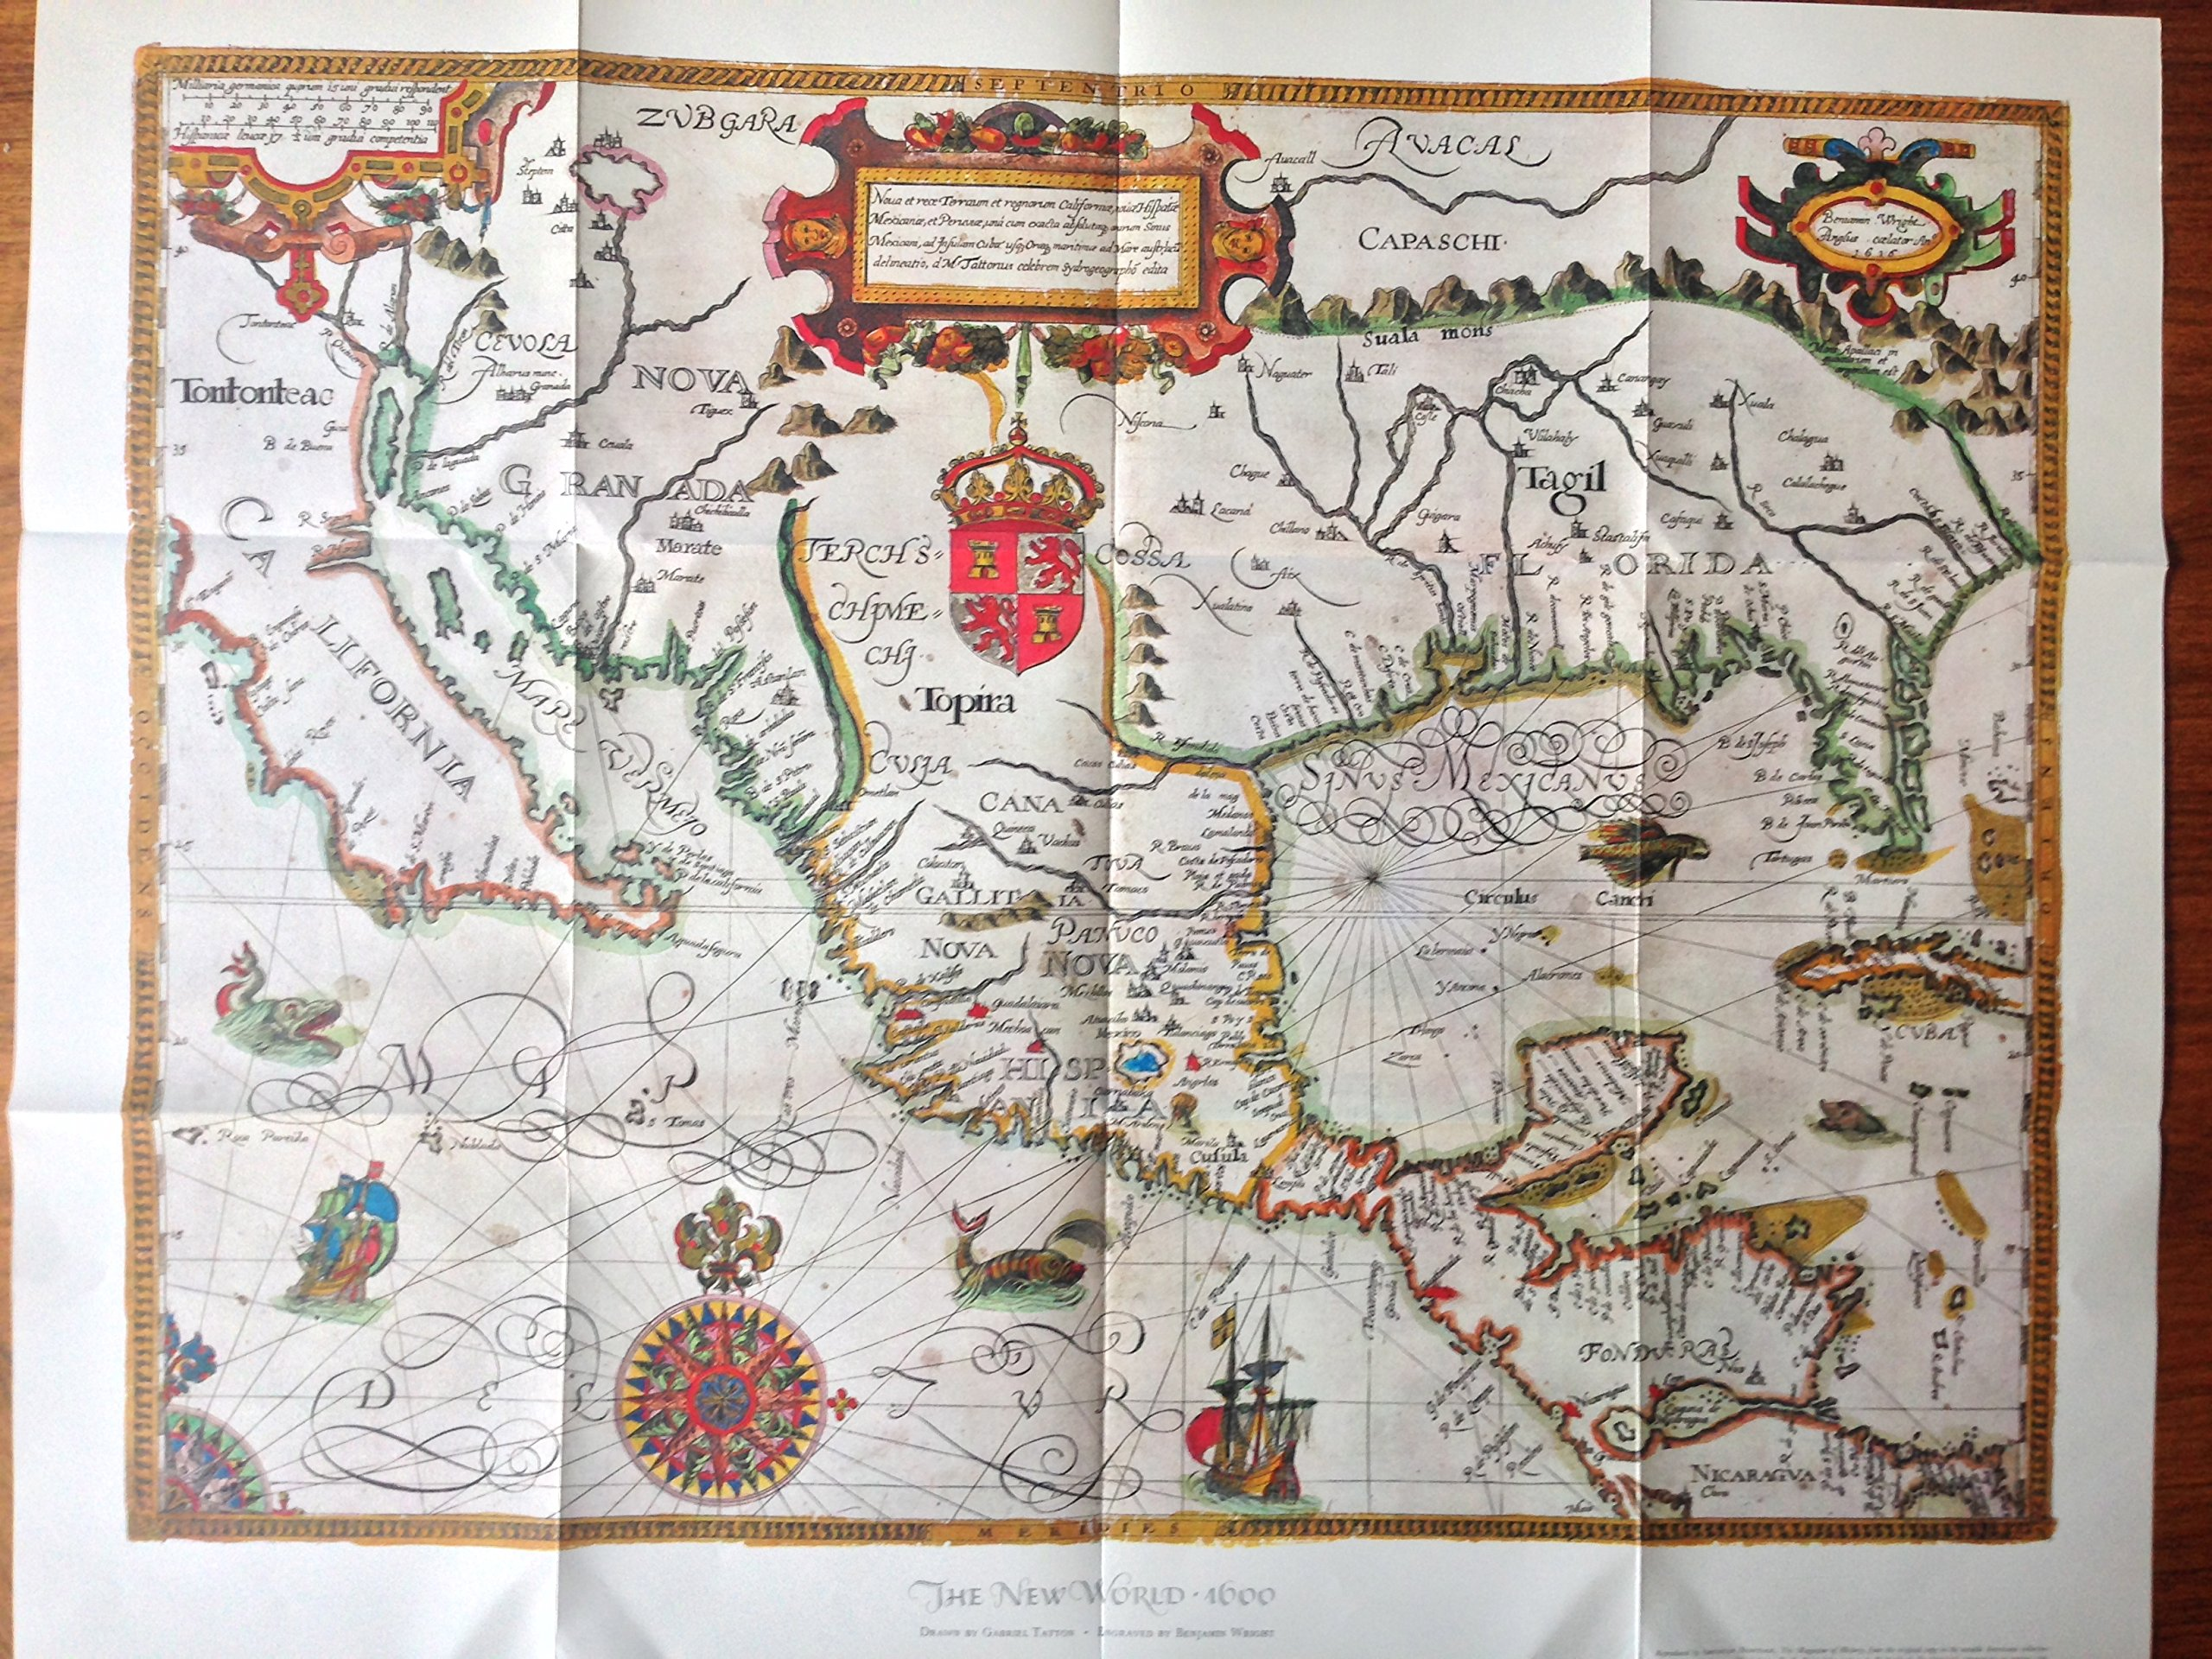 Map Reproduction The New World 1600 Drawn By Gabriel Tatton